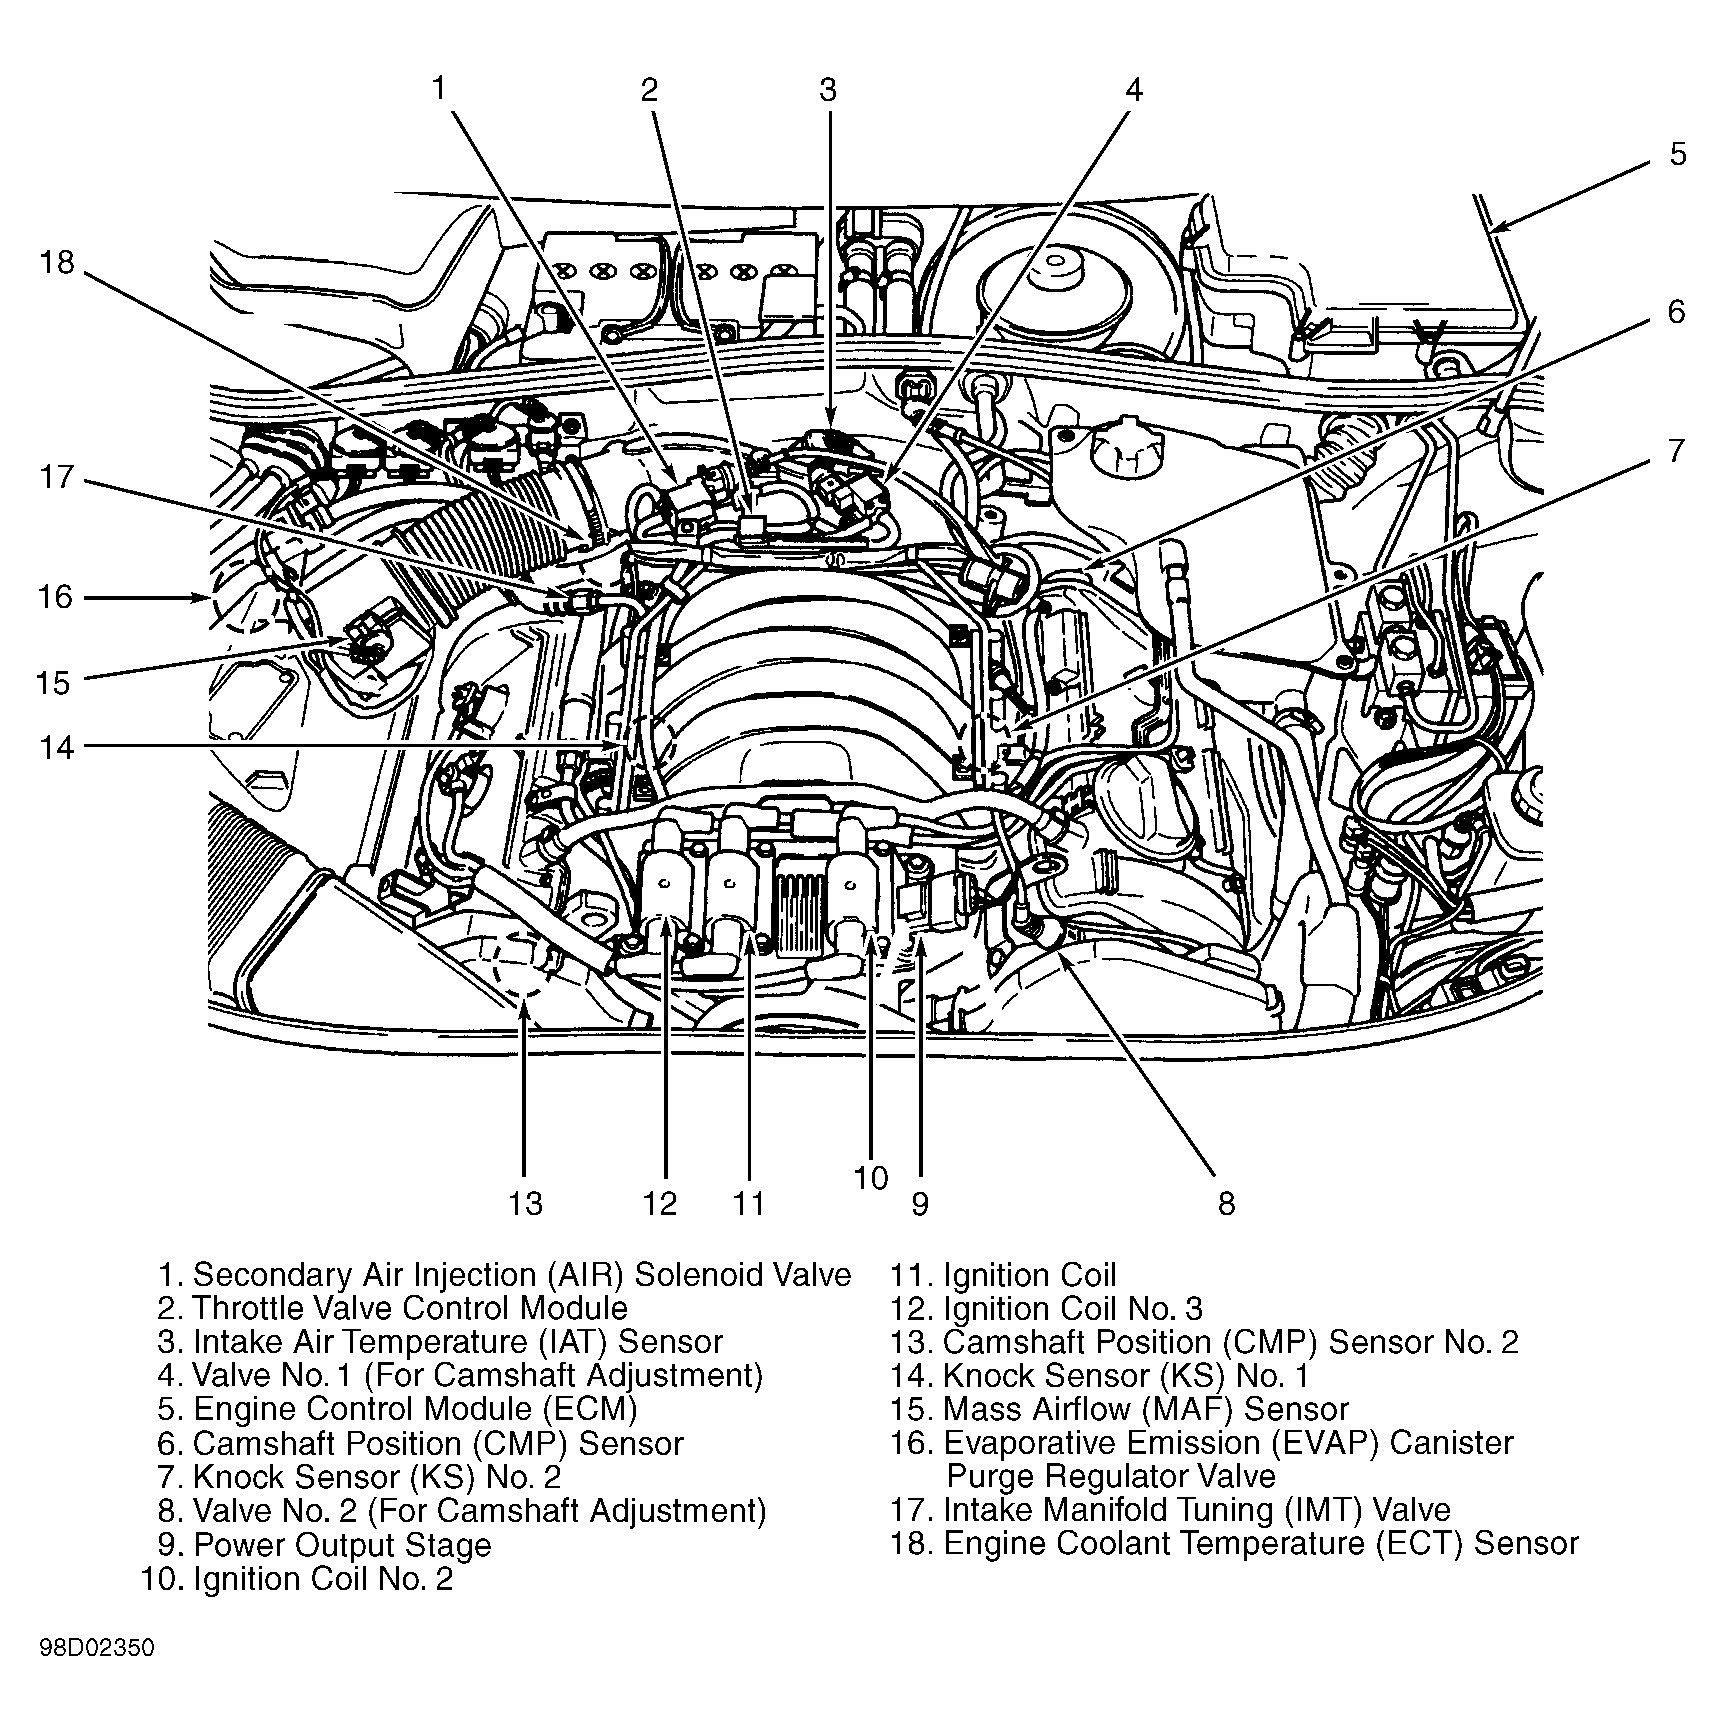 2005 dodge neon parts diagram - best wiring diagrams pour-asset -  pour-asset.ekoegur.es  ekoegur.es